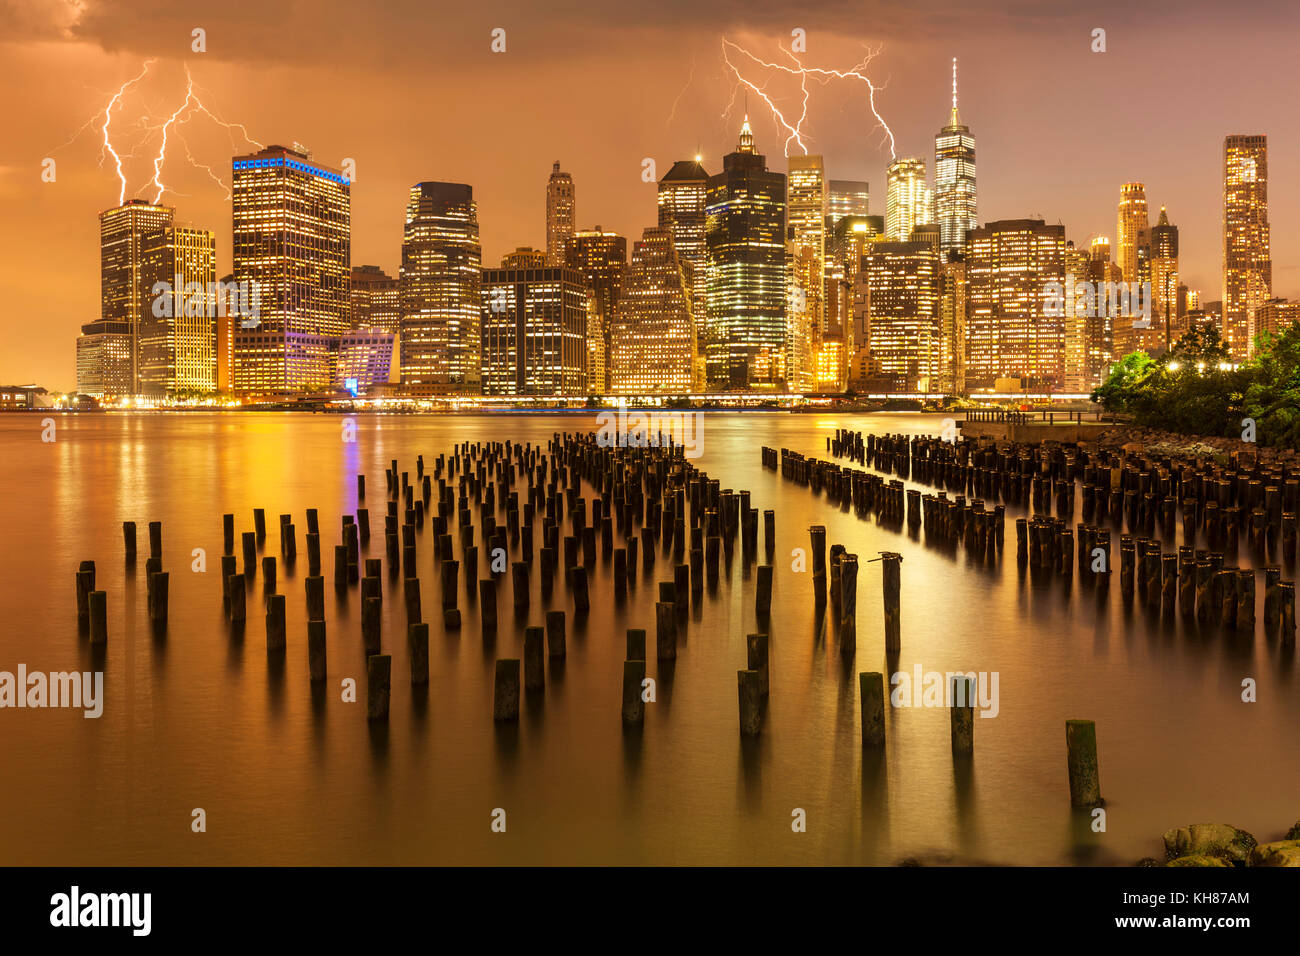 manhattan skyline New York skyline Lightning storm above the skyscrapers with Brooklyn old pier 1 wooden pilings - Stock Image